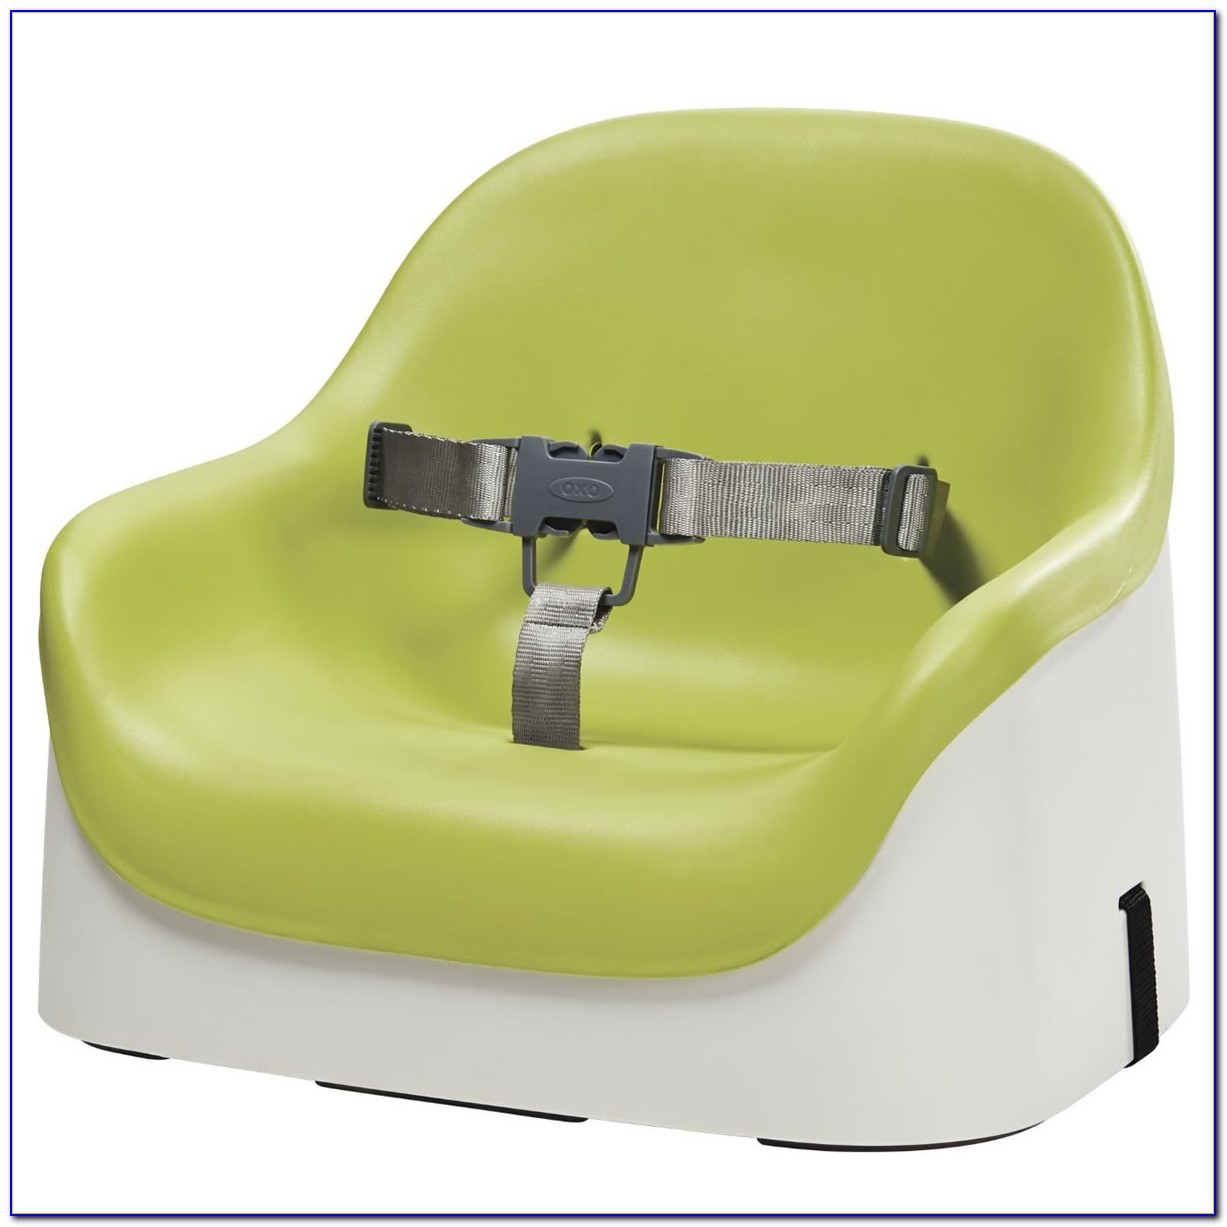 Booster Seat For Kitchen Chair